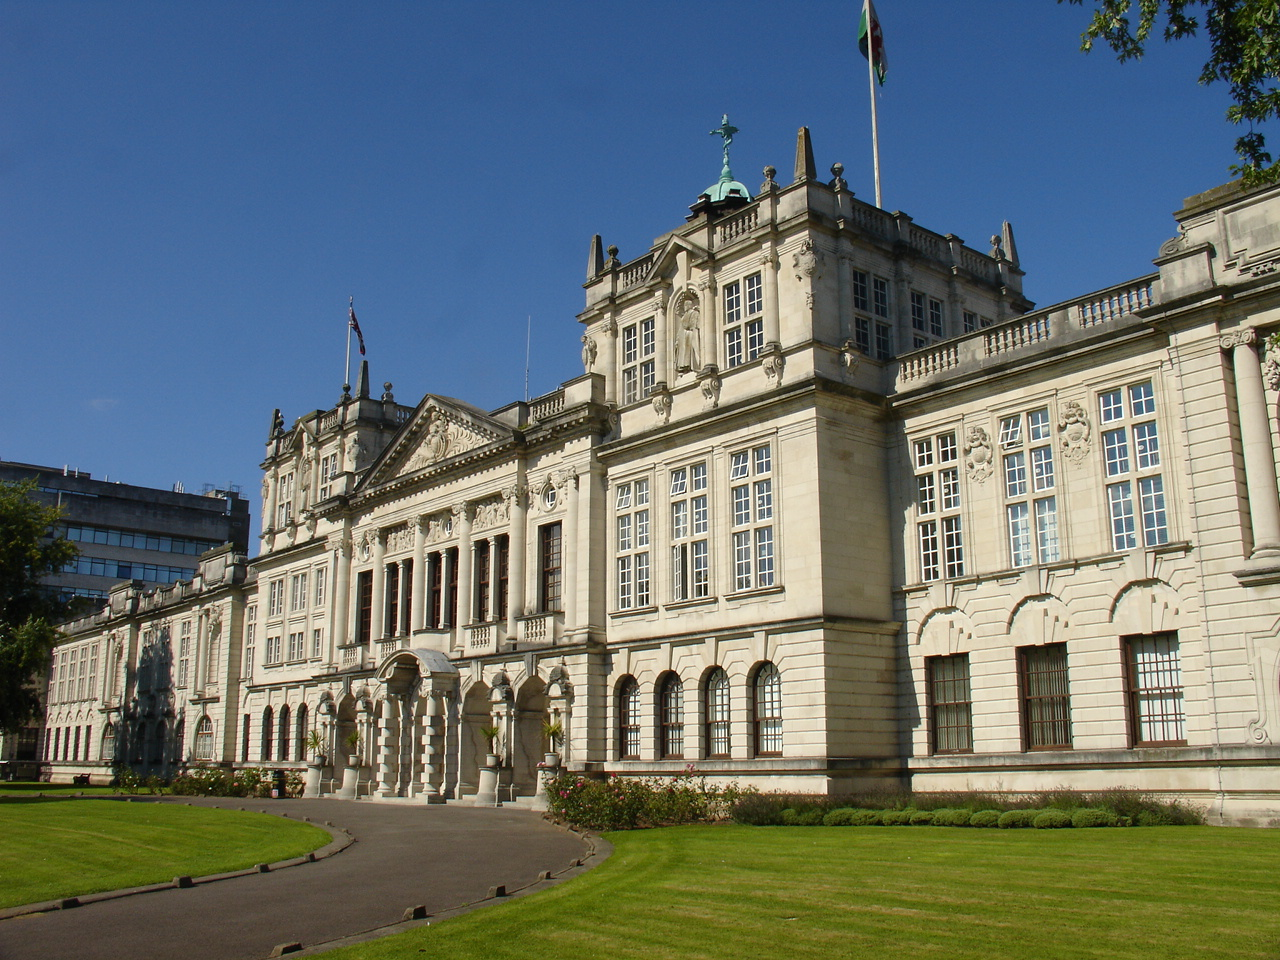 Health and Wellness Services at Cardiff University